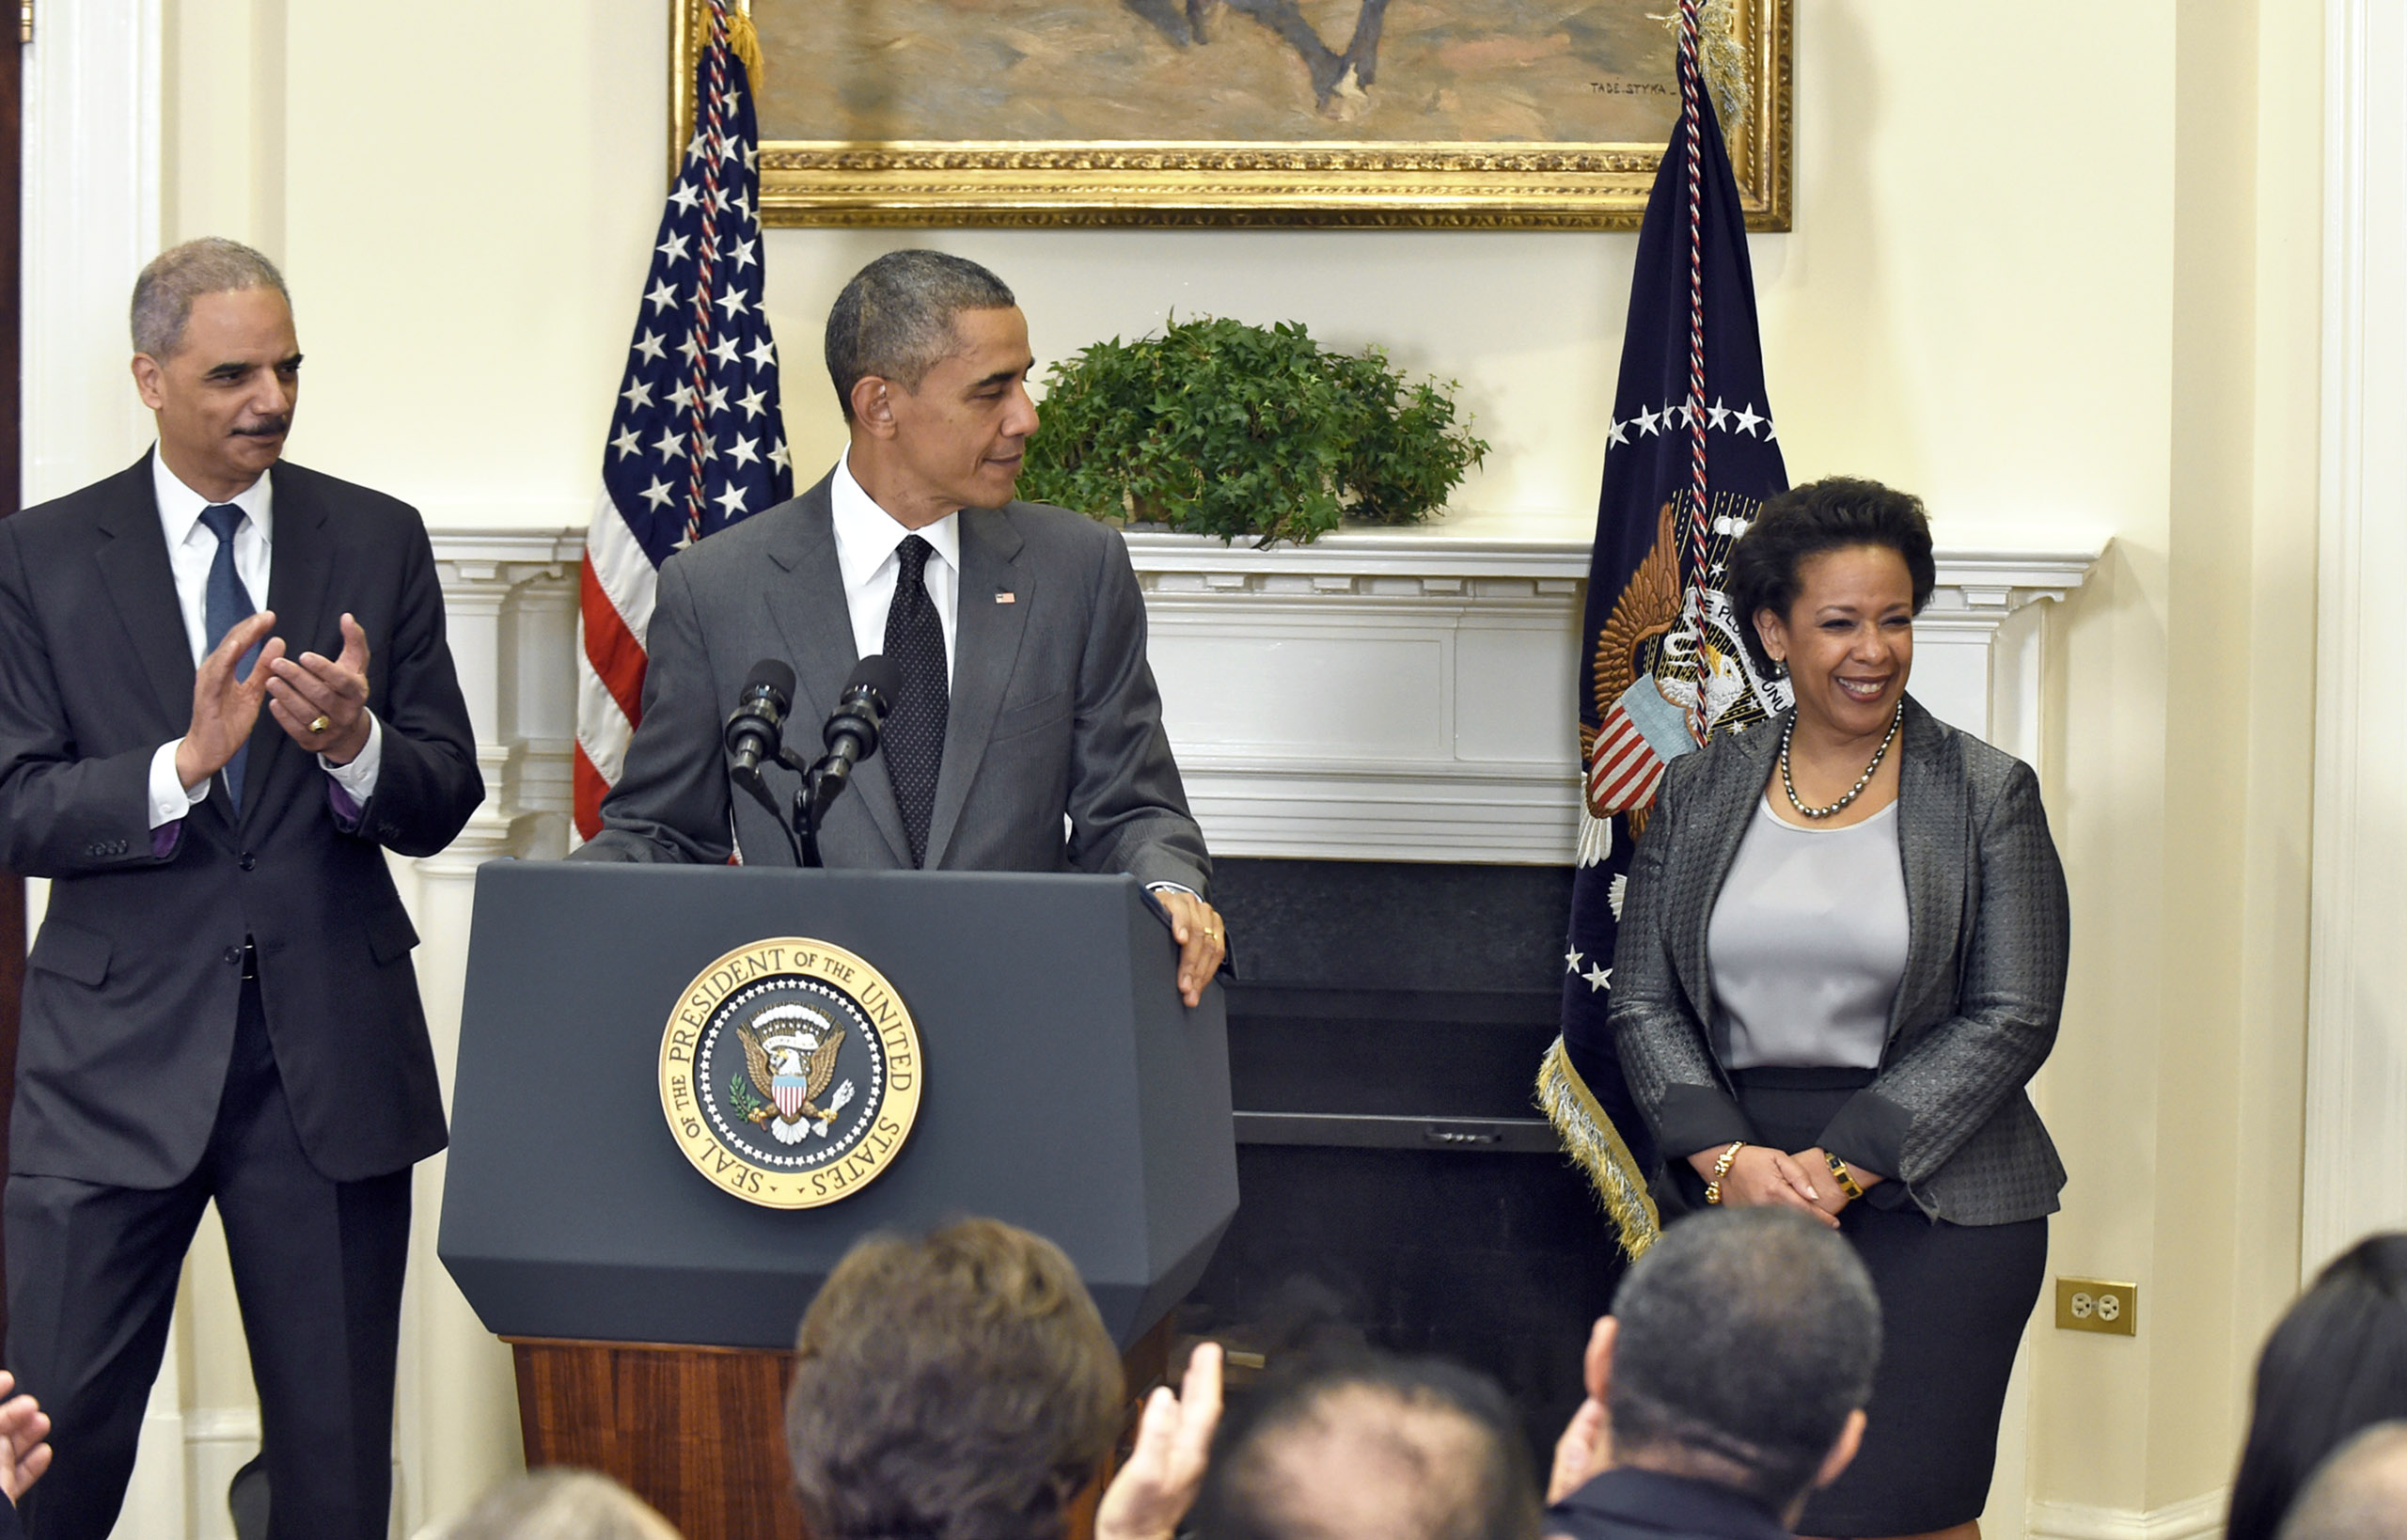 The top U.S. prosecutor for the Eastern District of New York, in Brooklyn, Lynch was one of the few names on President Obama's short list without close ties to the White House. If confirmed, she would be the first female African-American Attorney General.